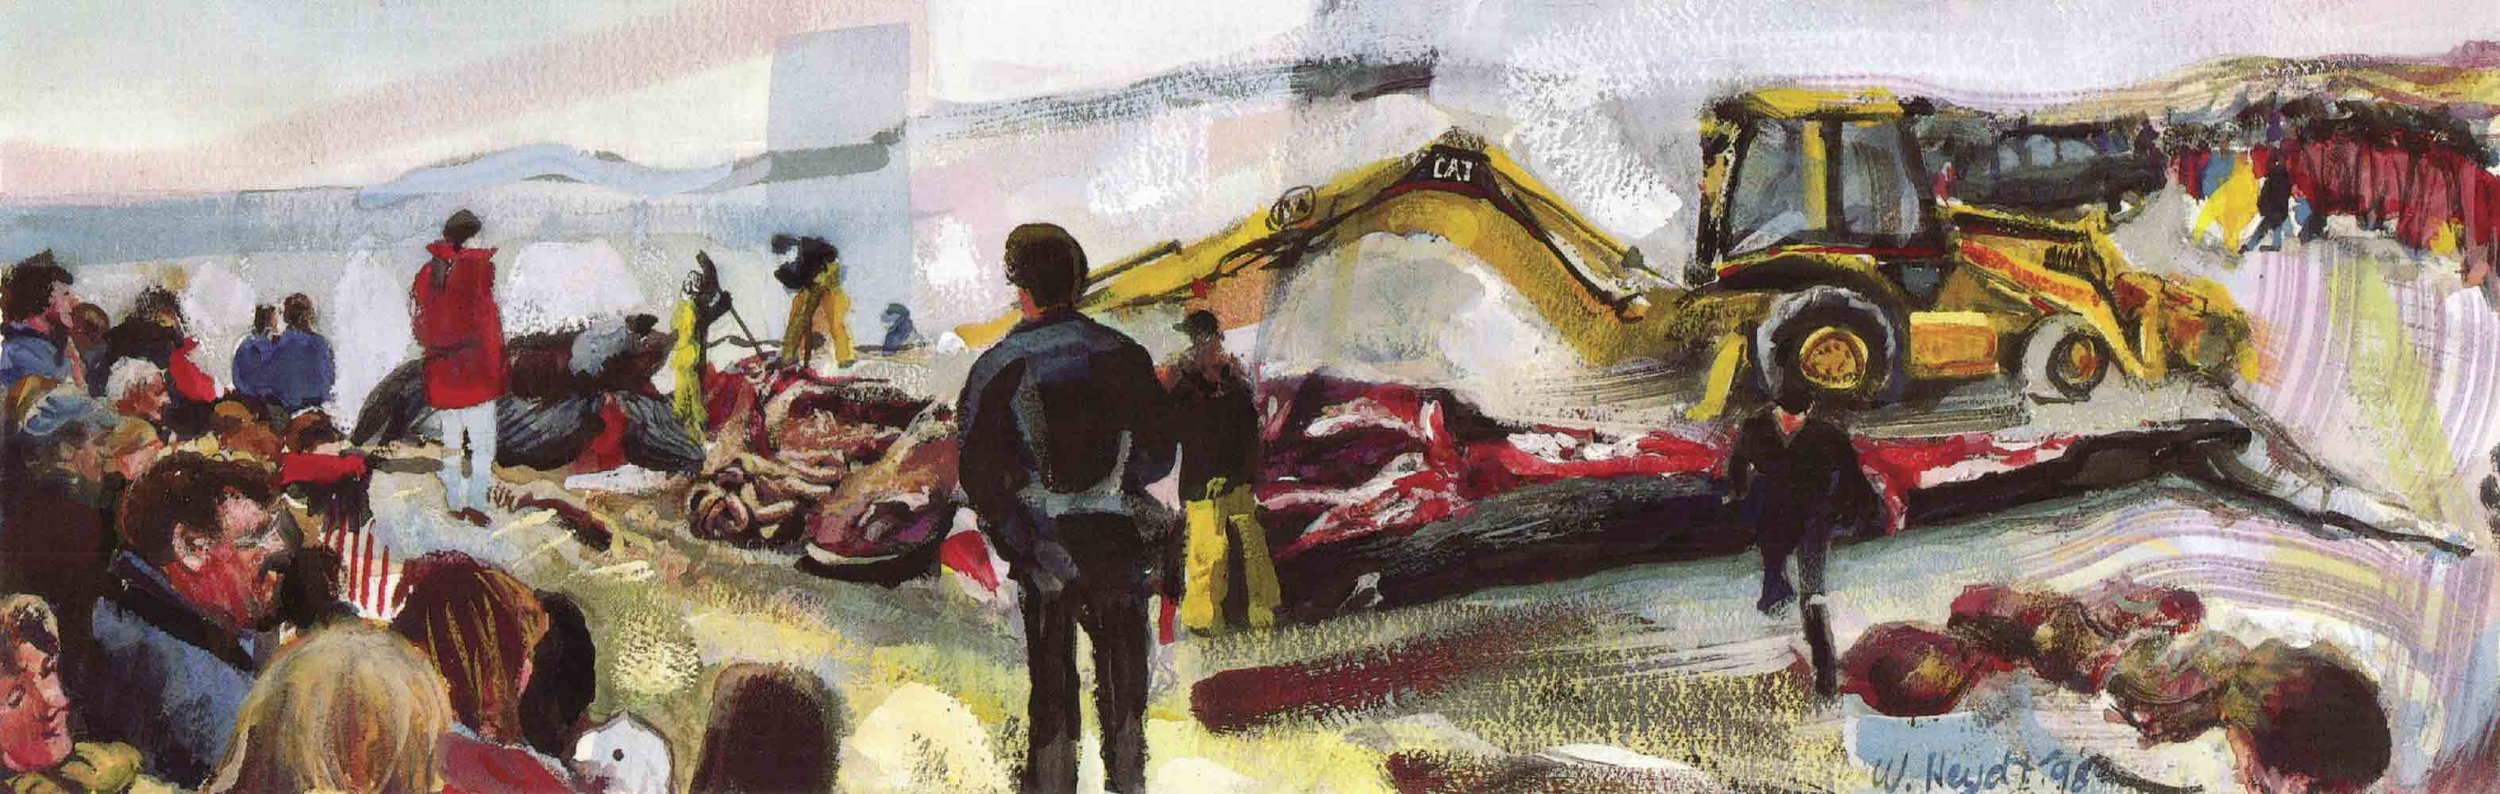 Blue whale on Second Beach, dissection with back-hoe, No. 4 - Middletown